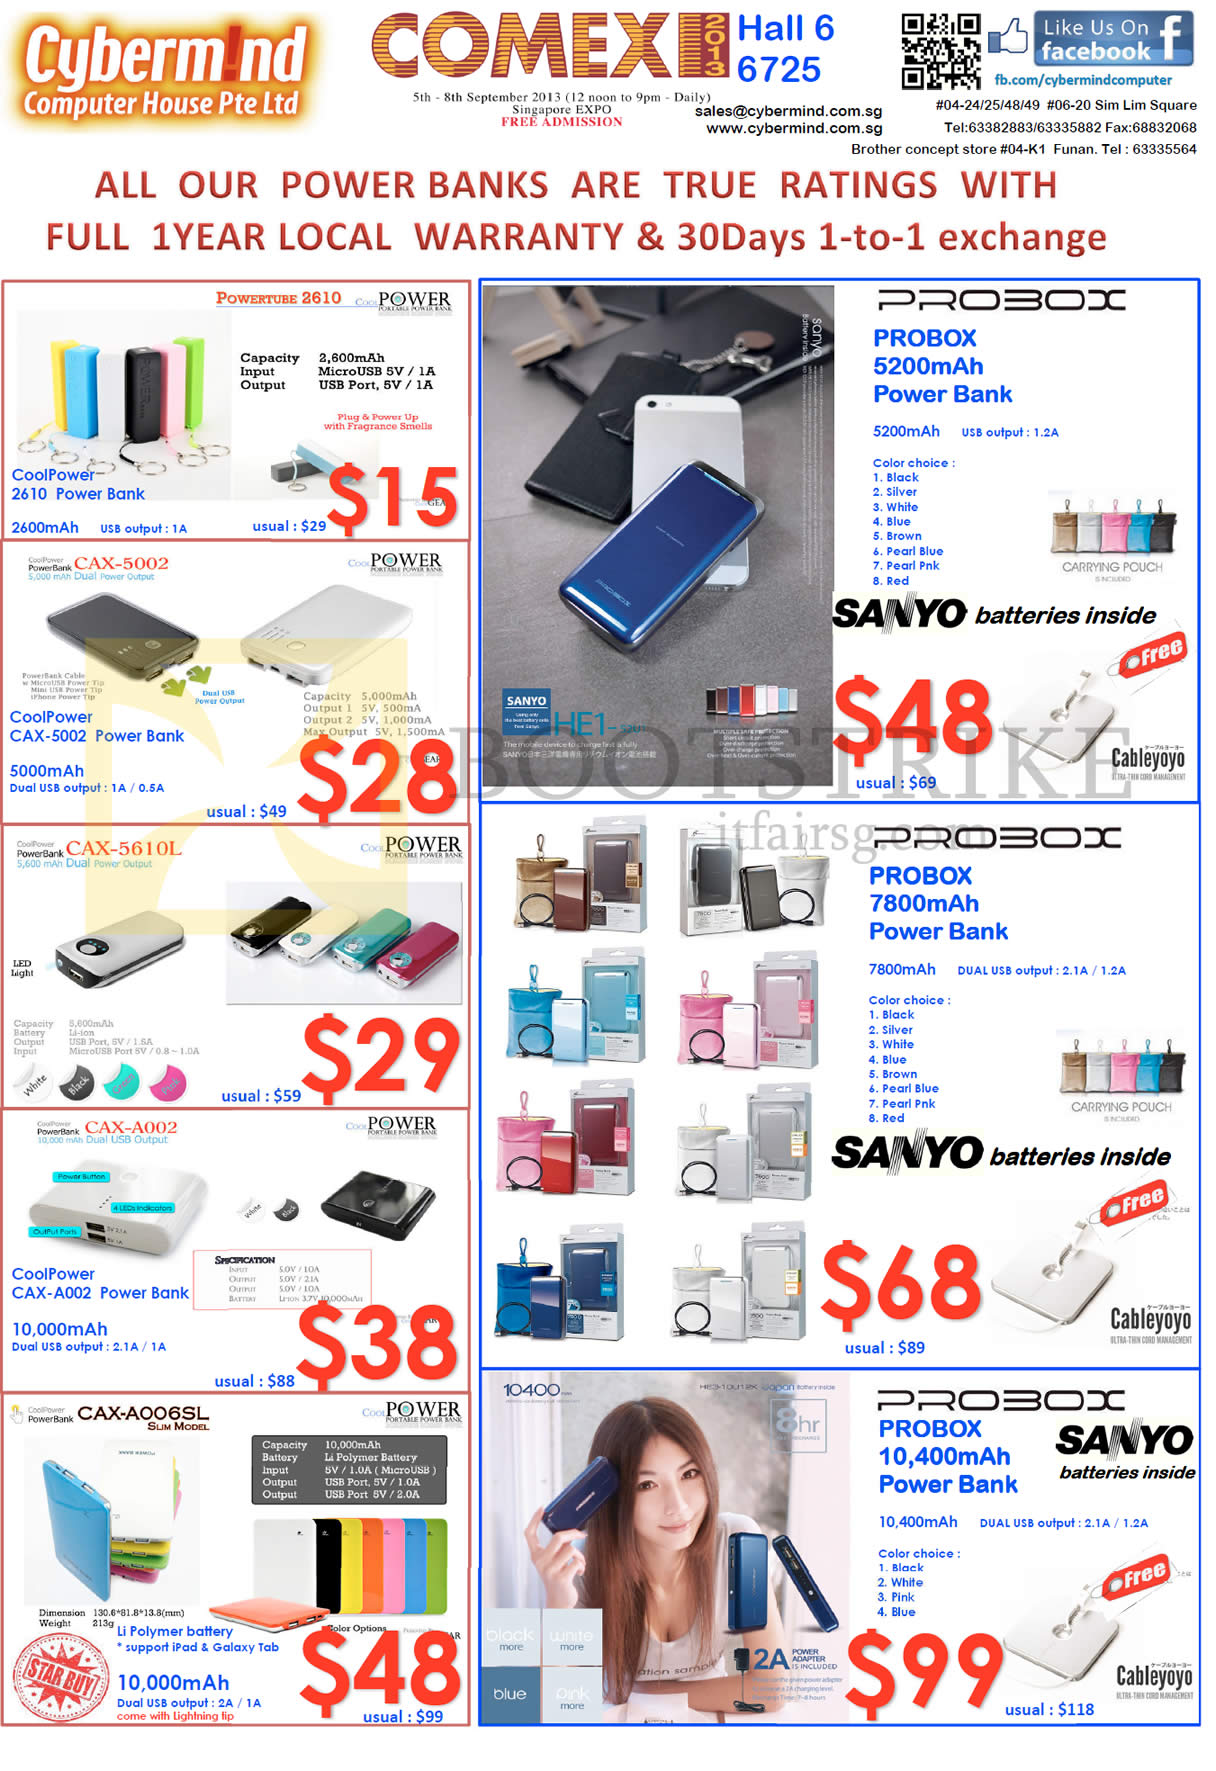 COMEX 2013 price list image brochure of Cybermind External Charger Power Banks, Powertube 2610, Probox, Coolpower, Sanyo, Cableyoyo